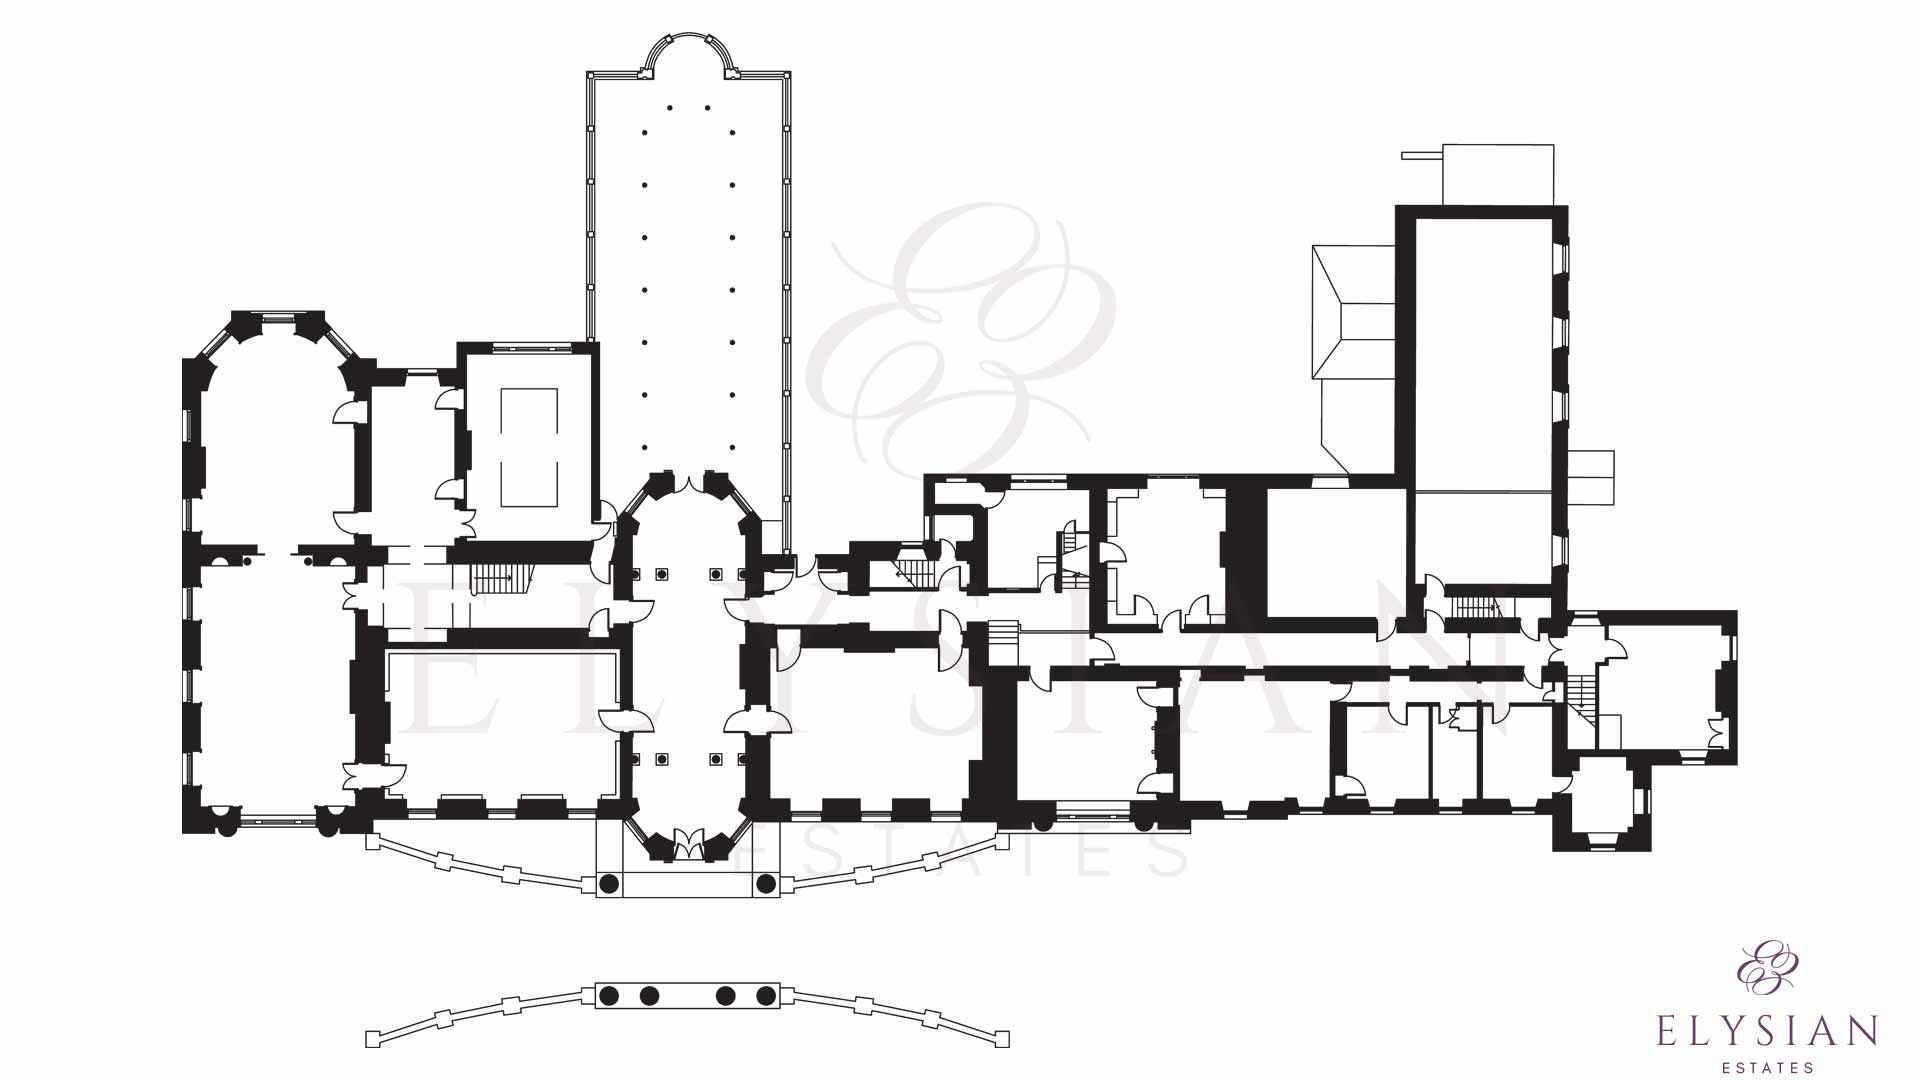 Broughton hall floor plan upper ground jpg 1500x1004 floorplan pinterest architecture plan and architecture